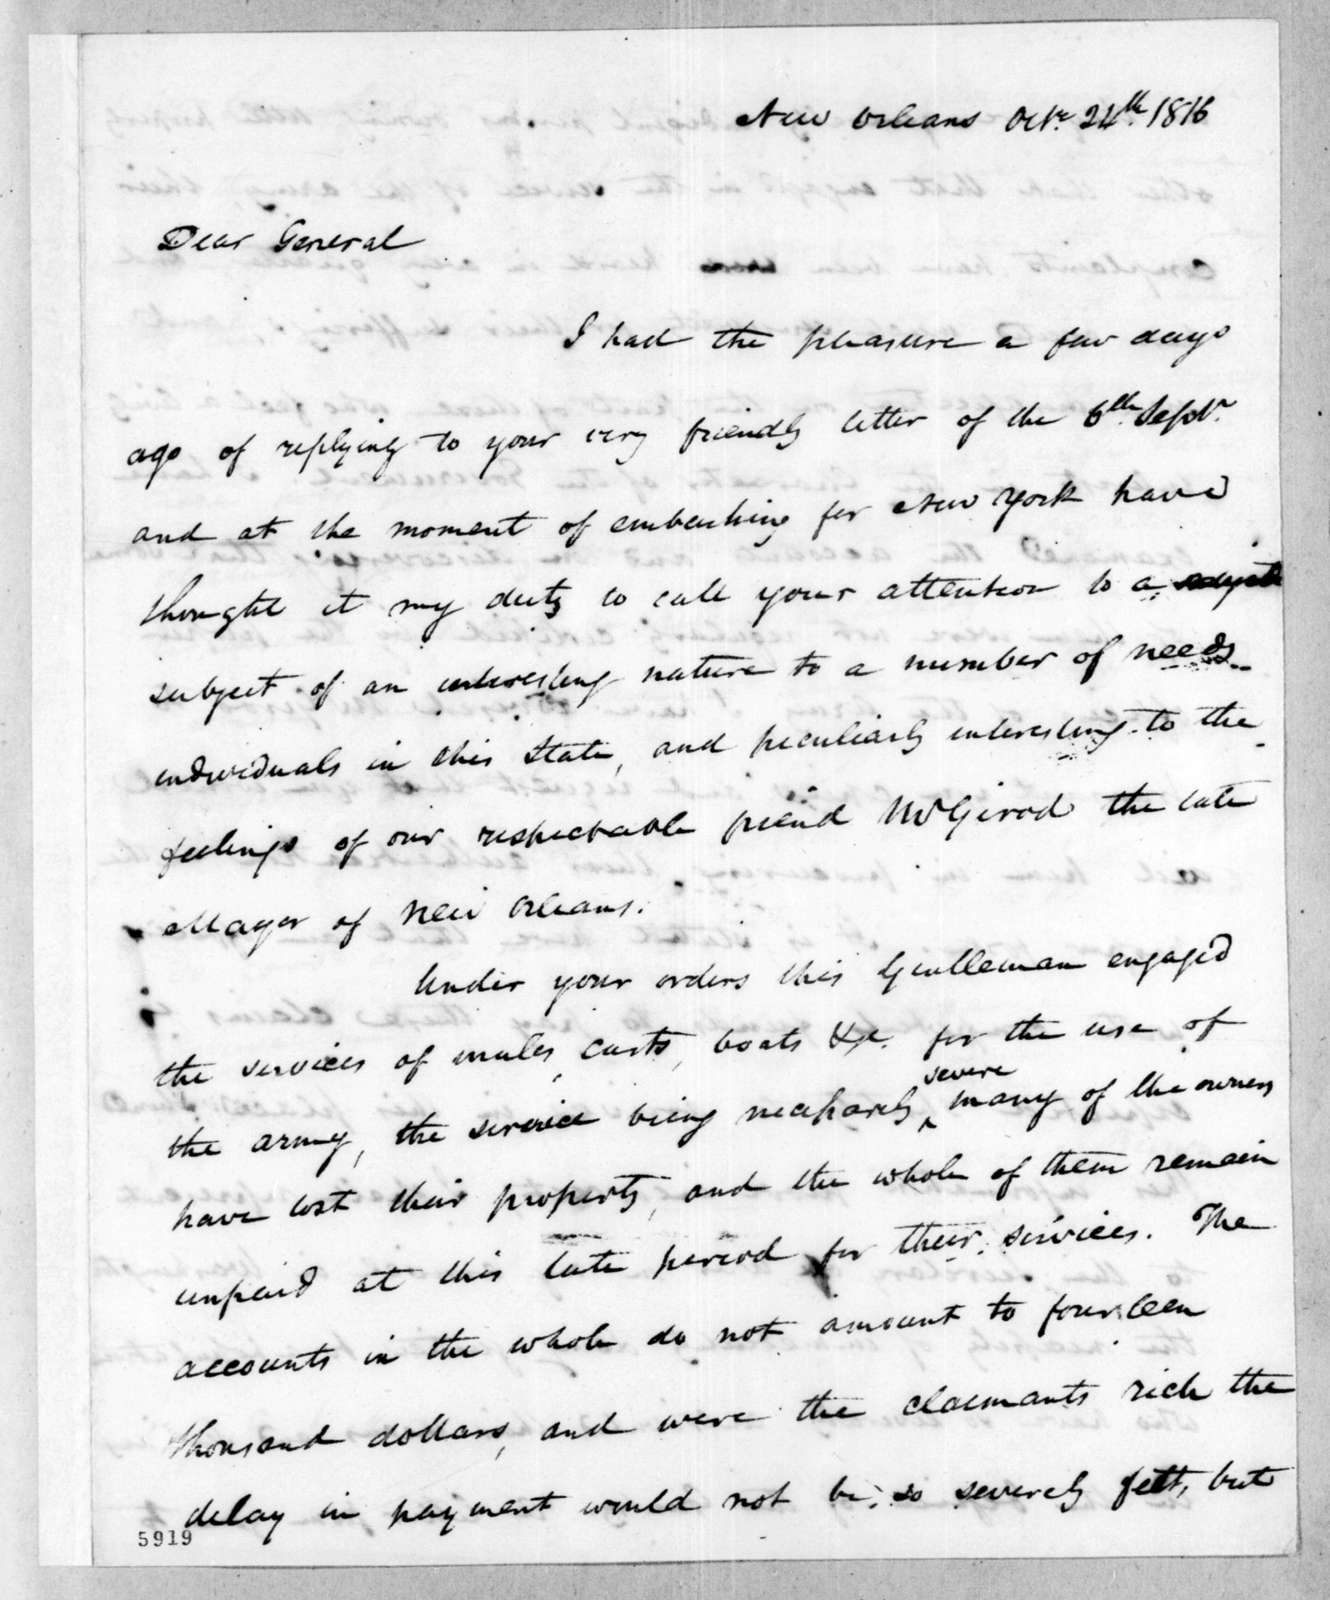 James Brown to Andrew Jackson, October 24, 1816